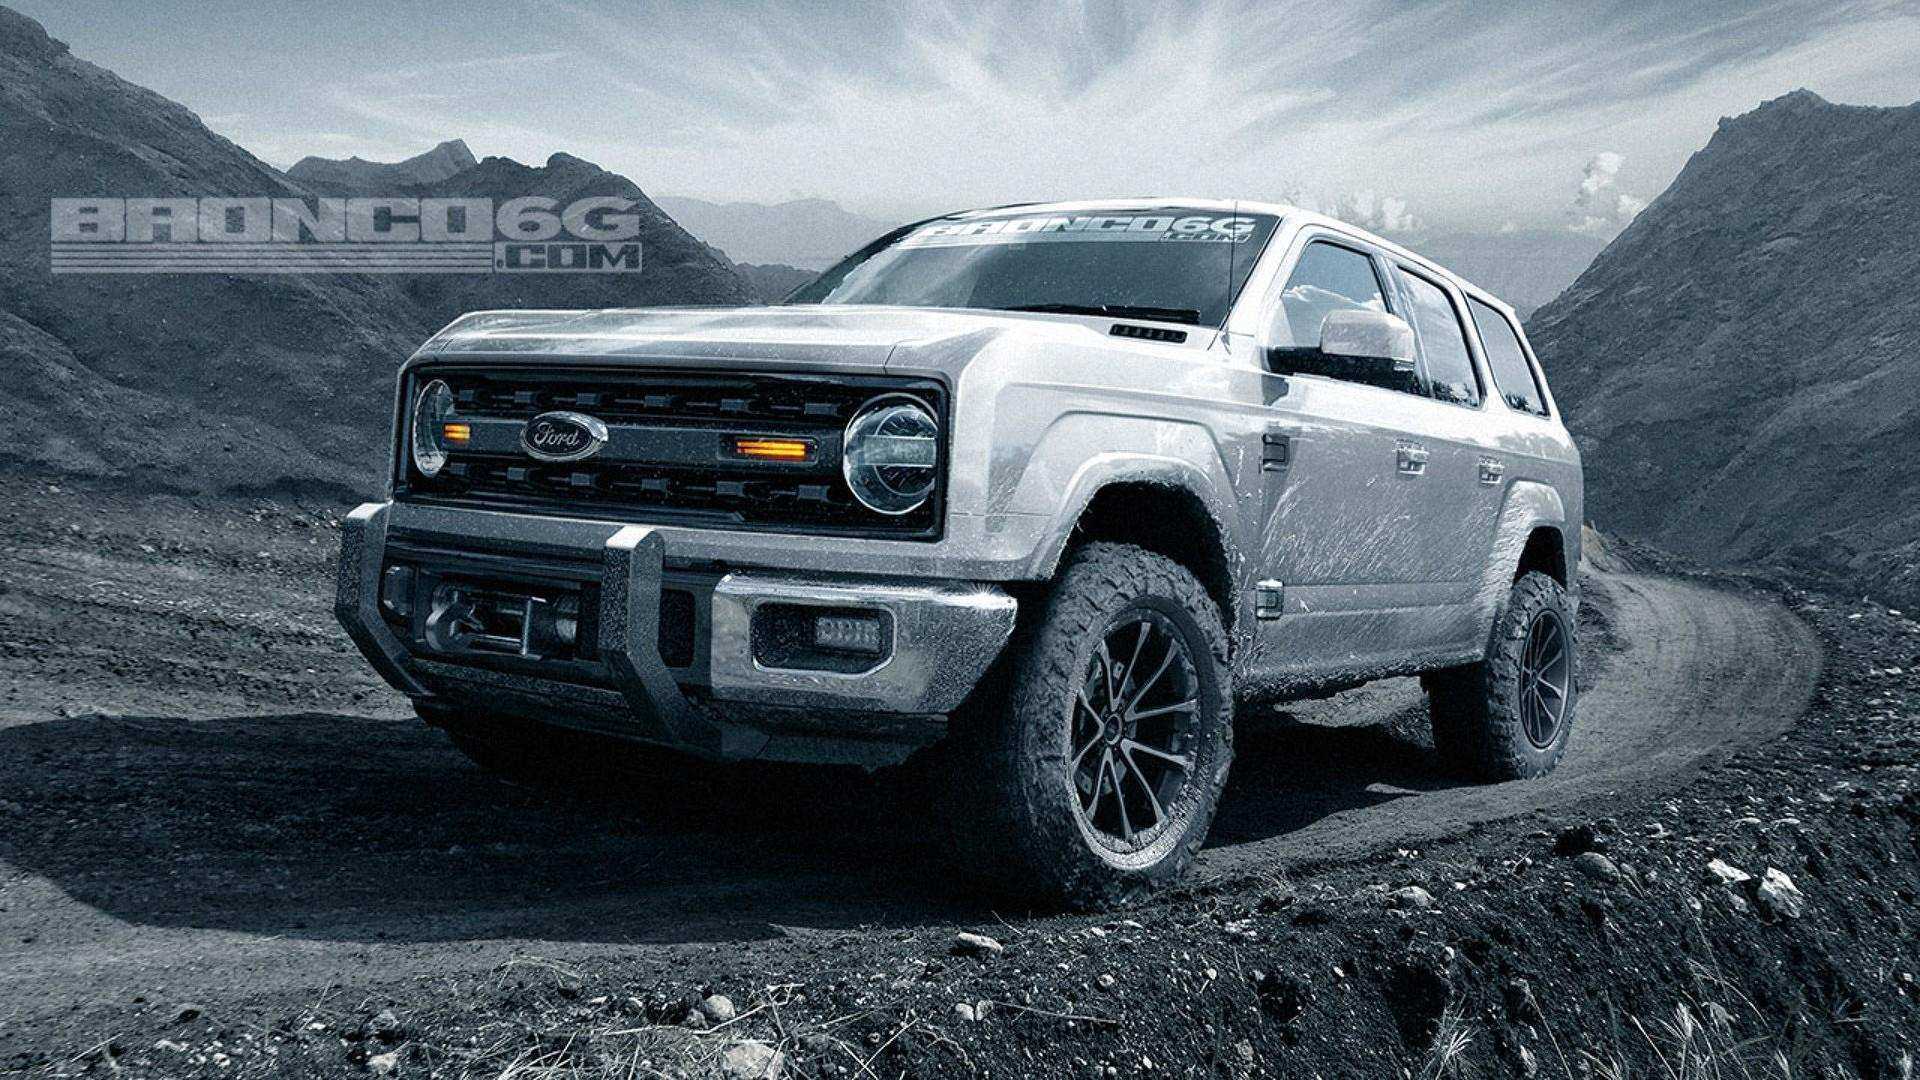 66 All New 2020 Ford Bronco Design Wallpaper